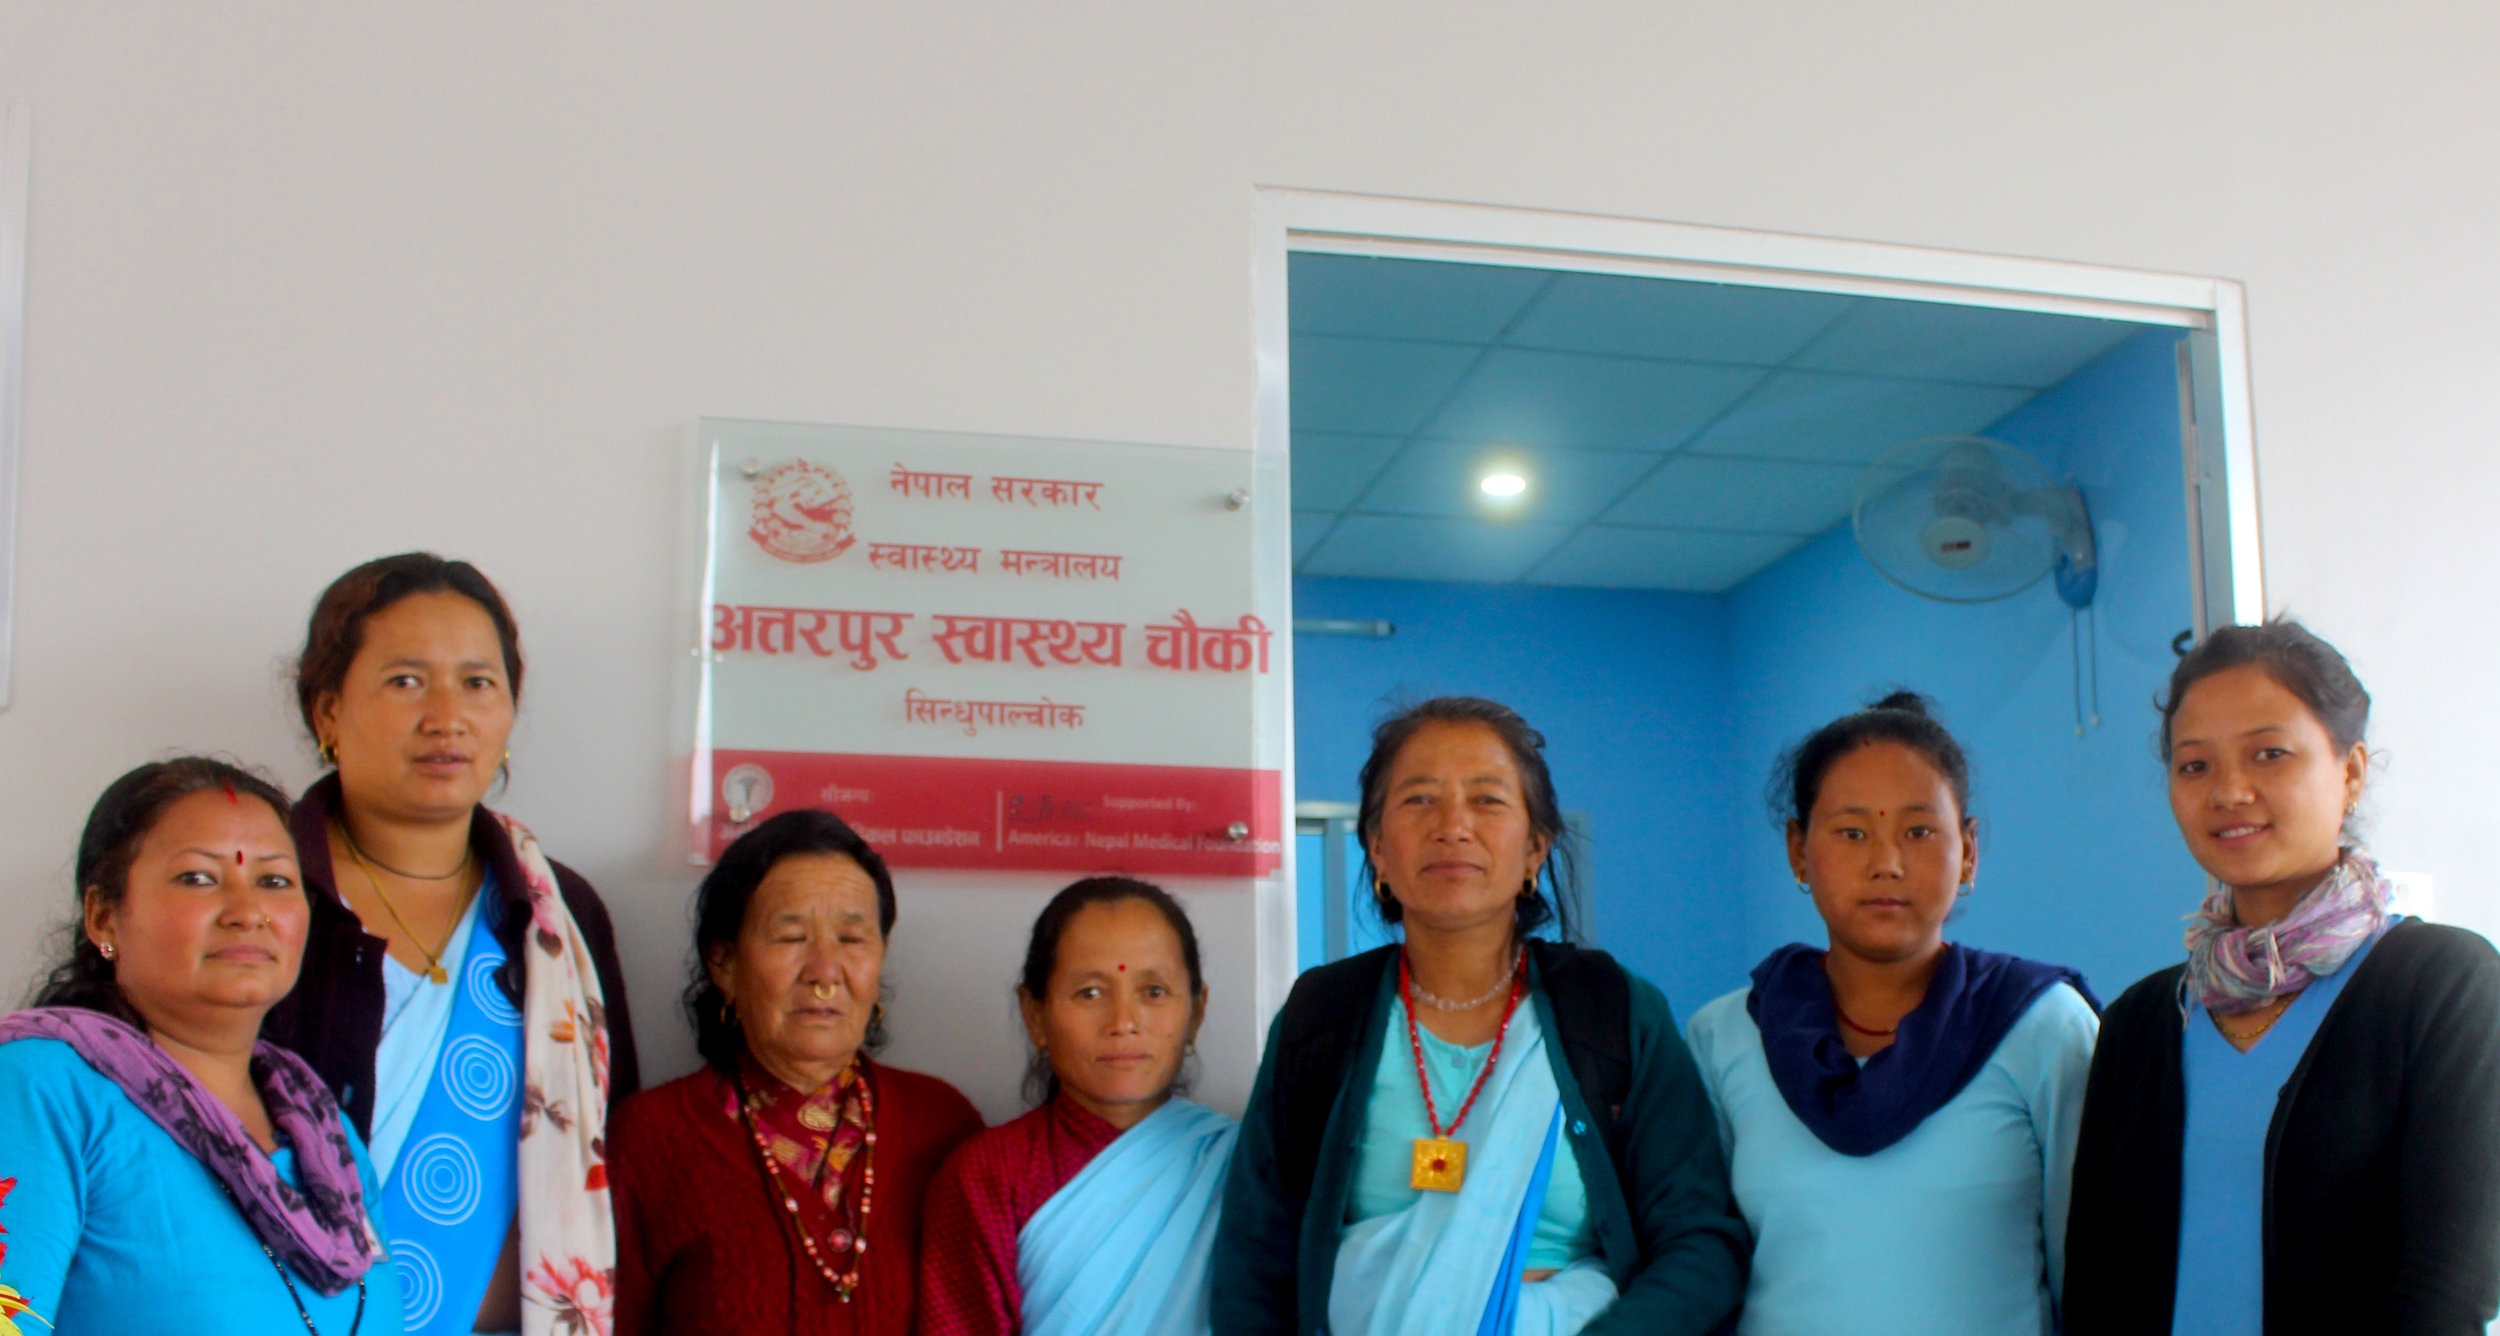 New Attarpur Health Post after rebuilding by ANMF